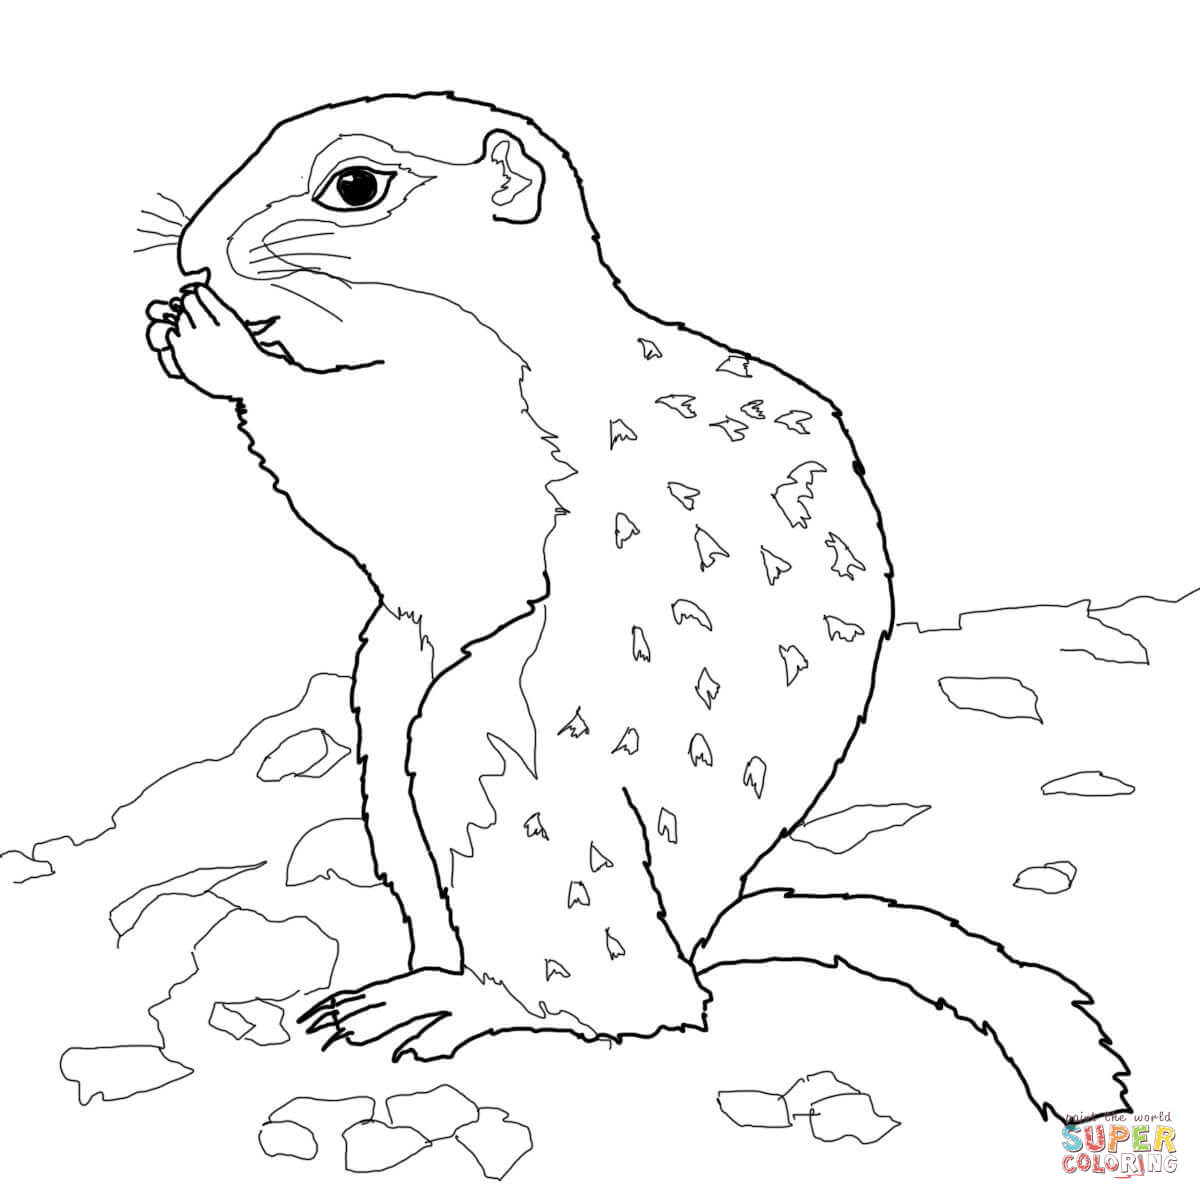 Arctic Ground Squirrel coloring page.